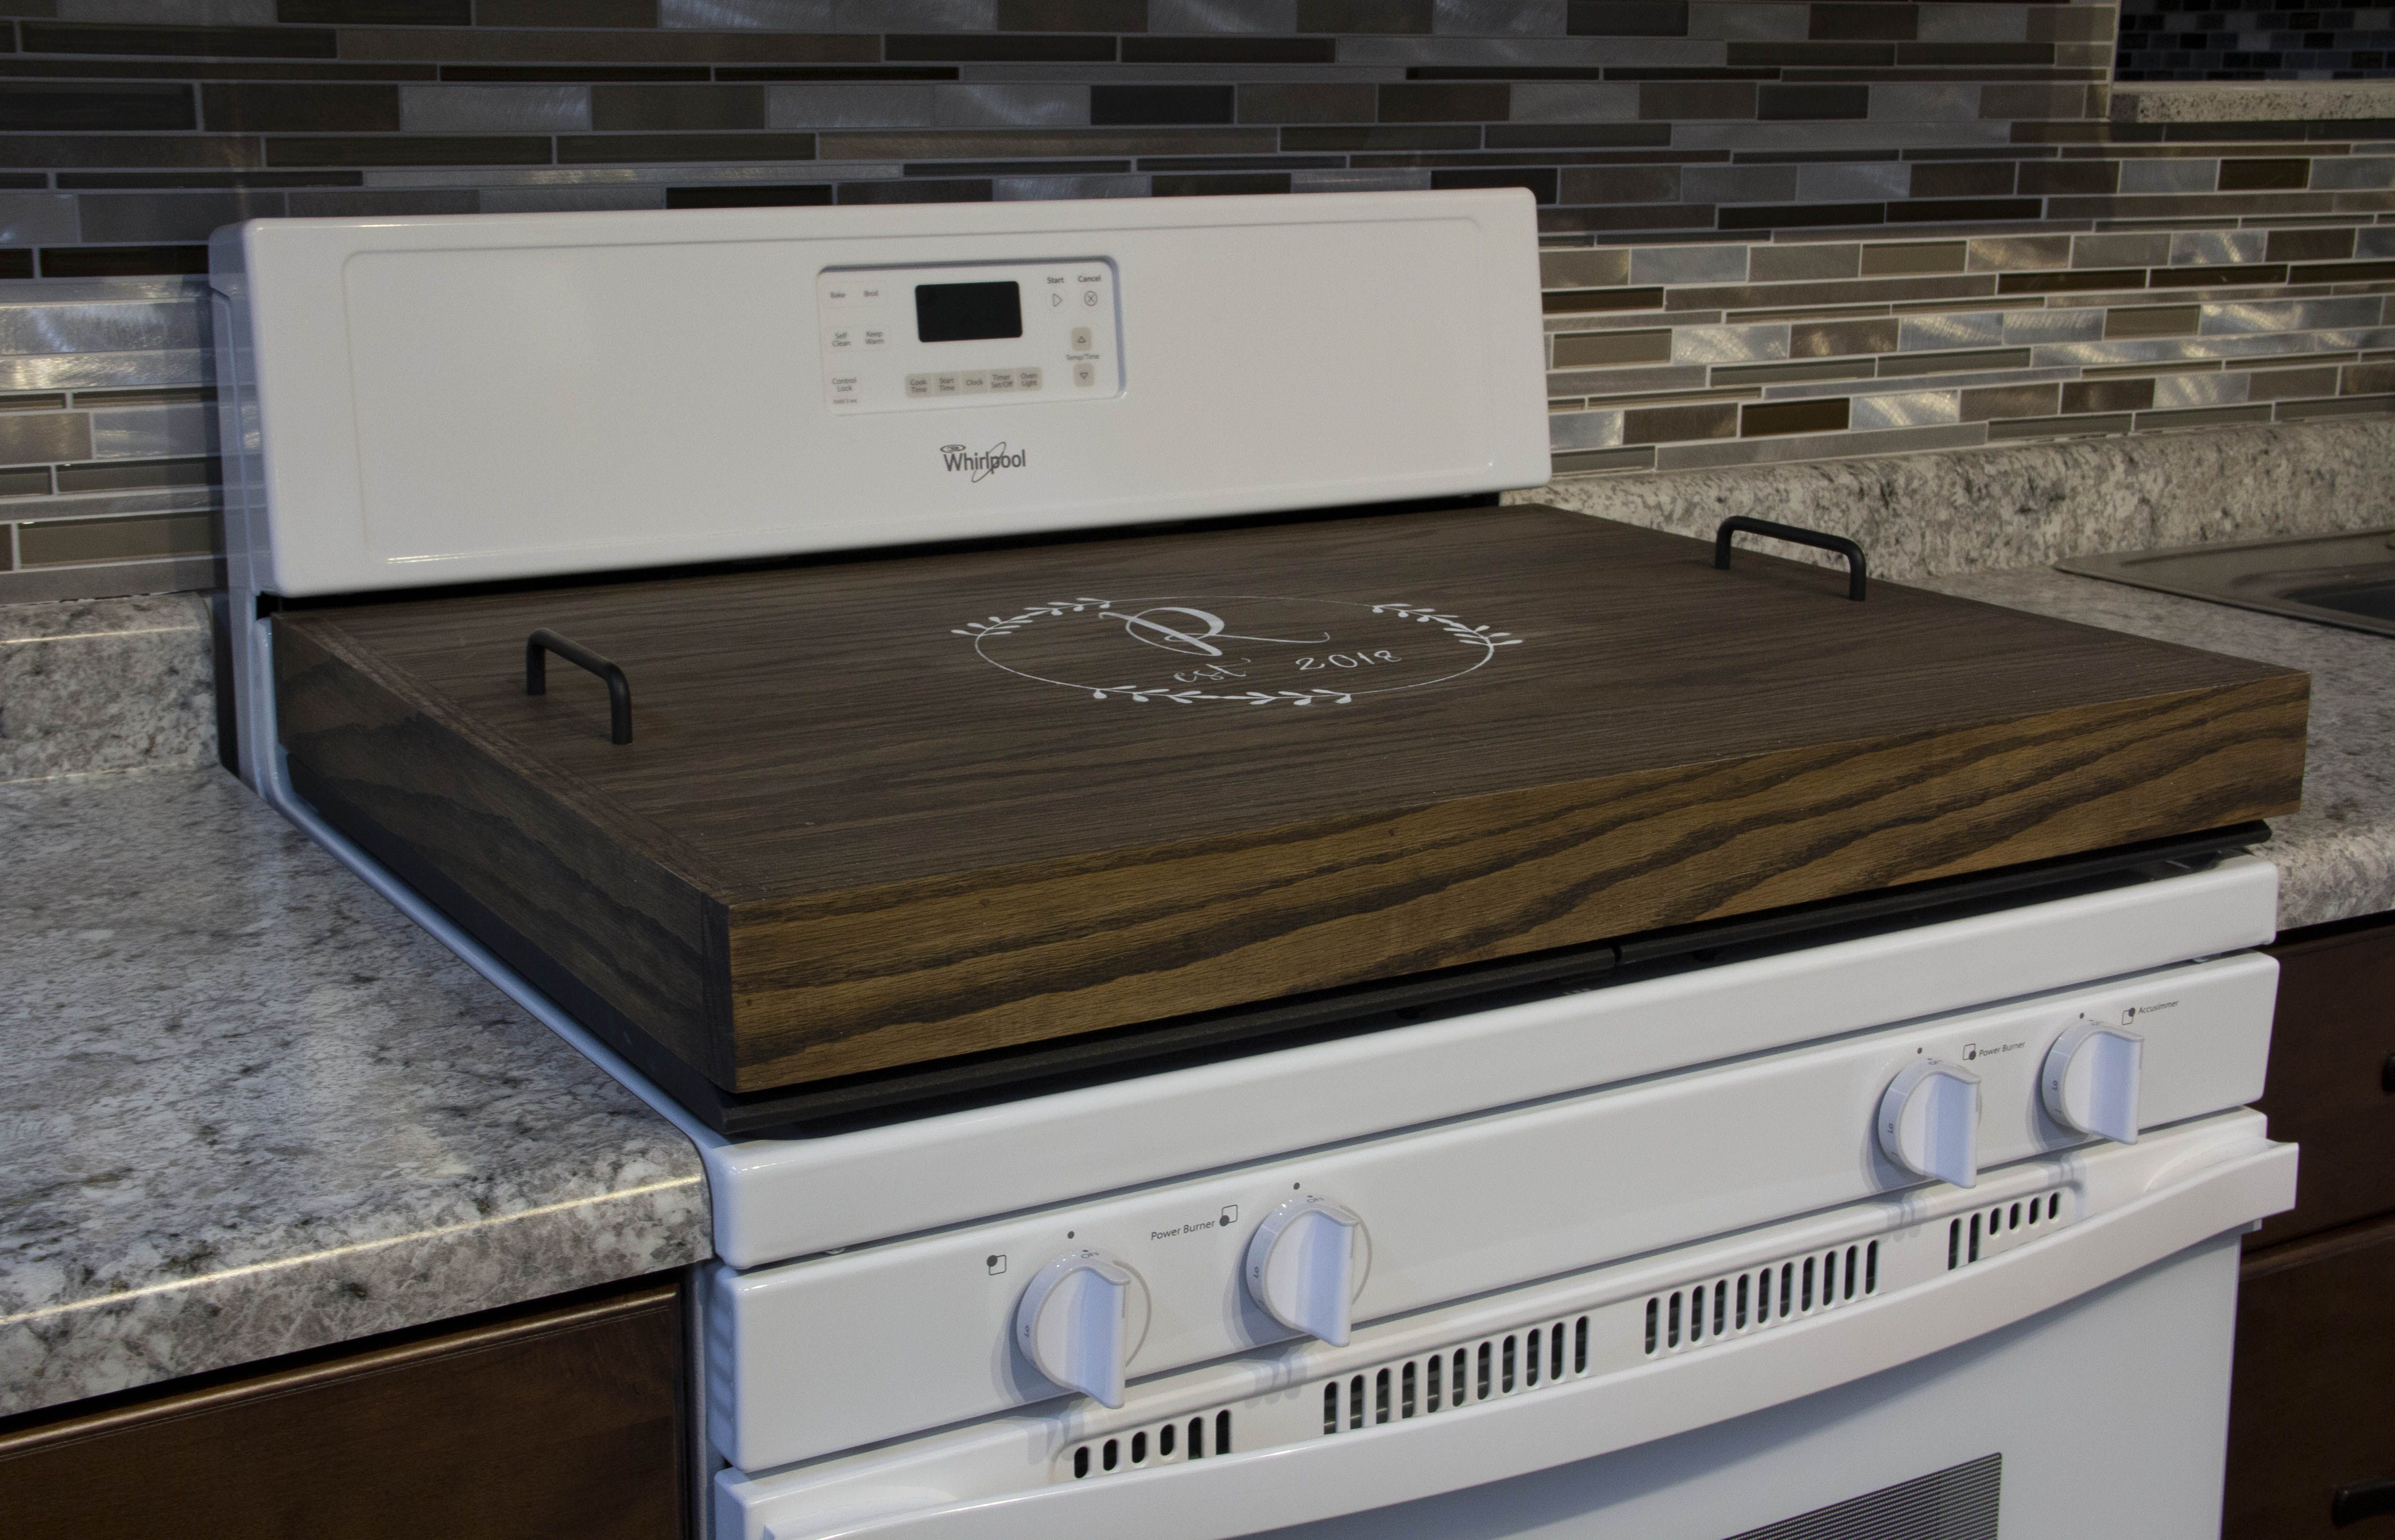 Thick Pine Stove Top Cover Stove Top Cover Stove Cover Wooden Stove Top Covers